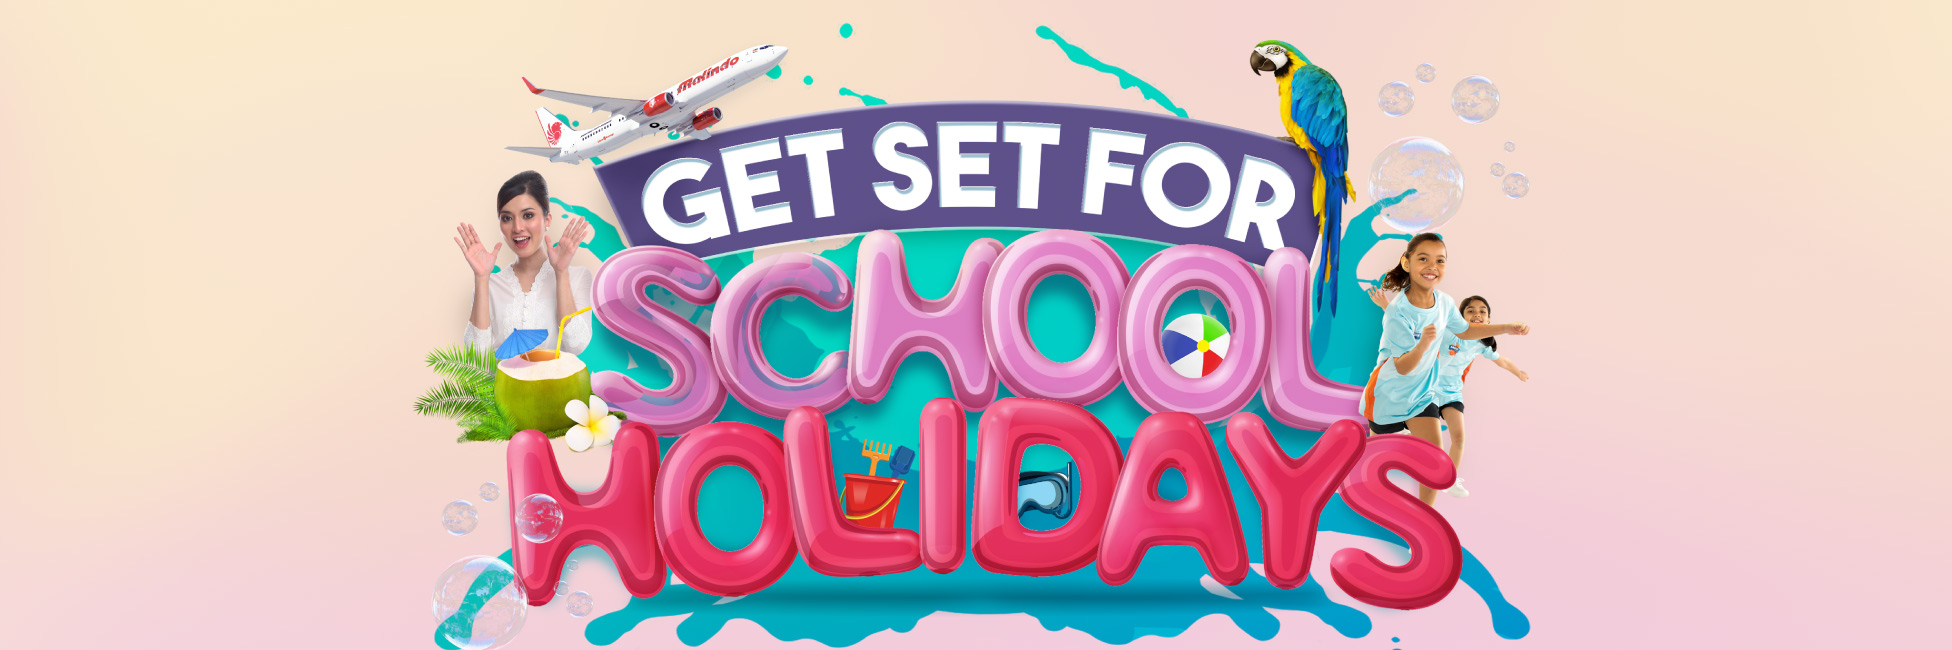 Malindo School Holidays - International microsite school holidays 18 11 19